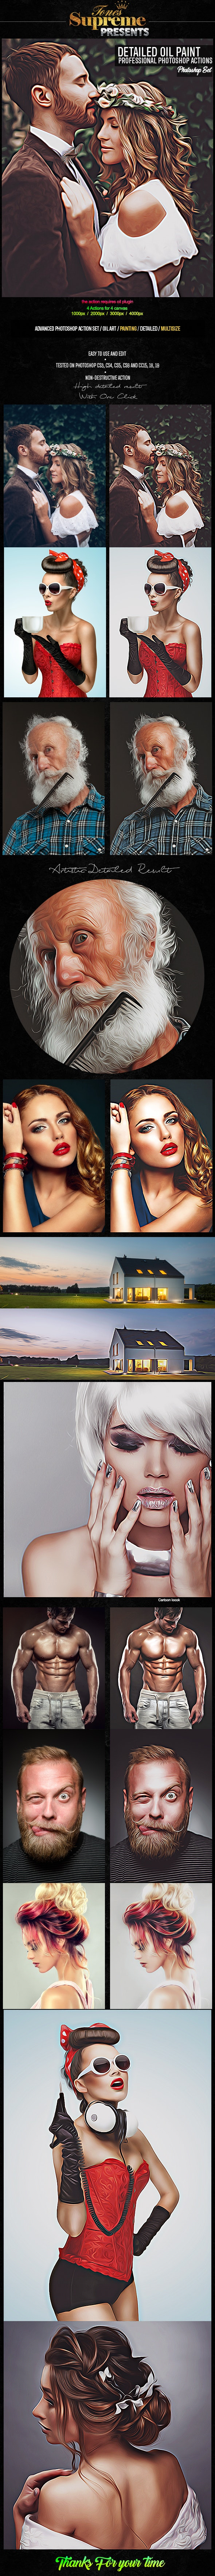 Detailed Oil Painting Photoshop Actions - Photo Effects Actions